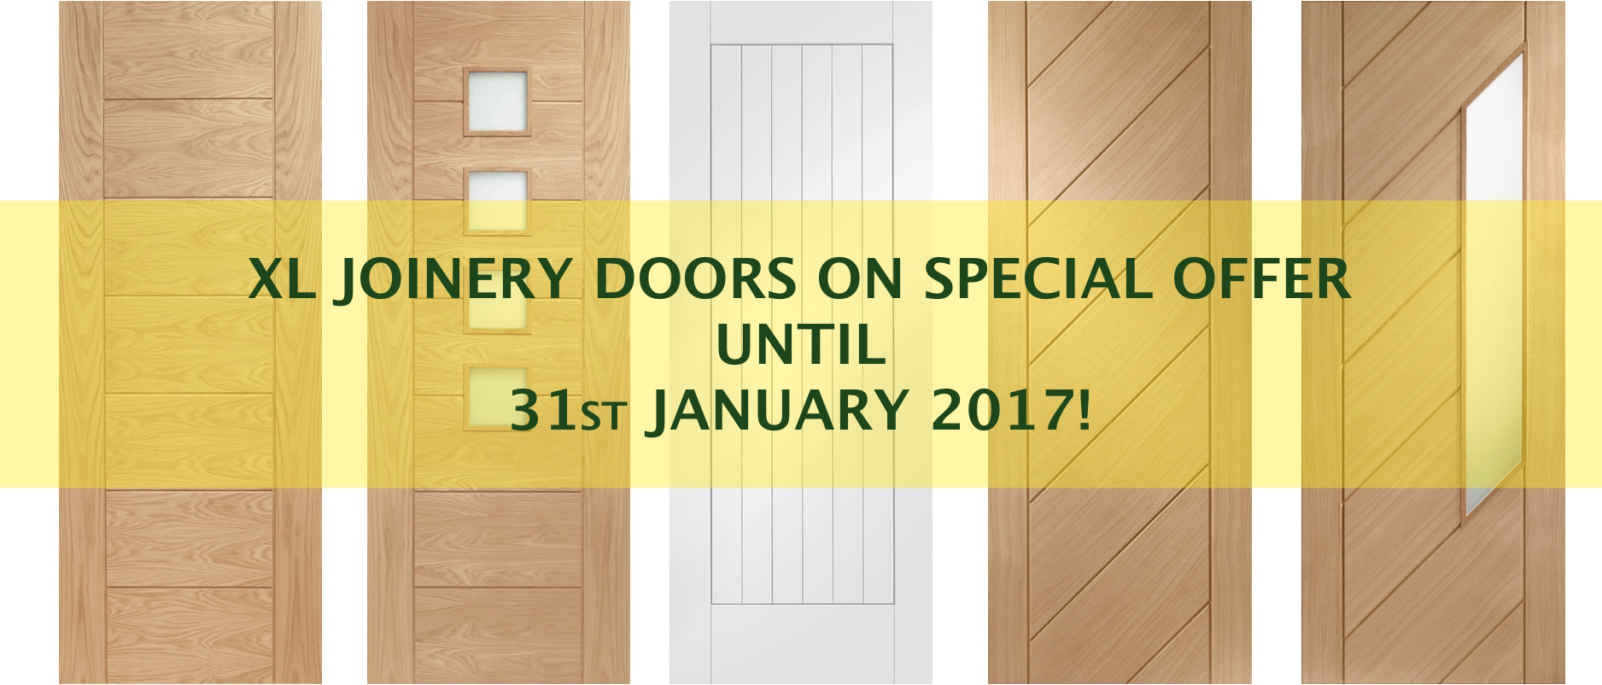 05 XL Joinery Doors - Extended Special Offer